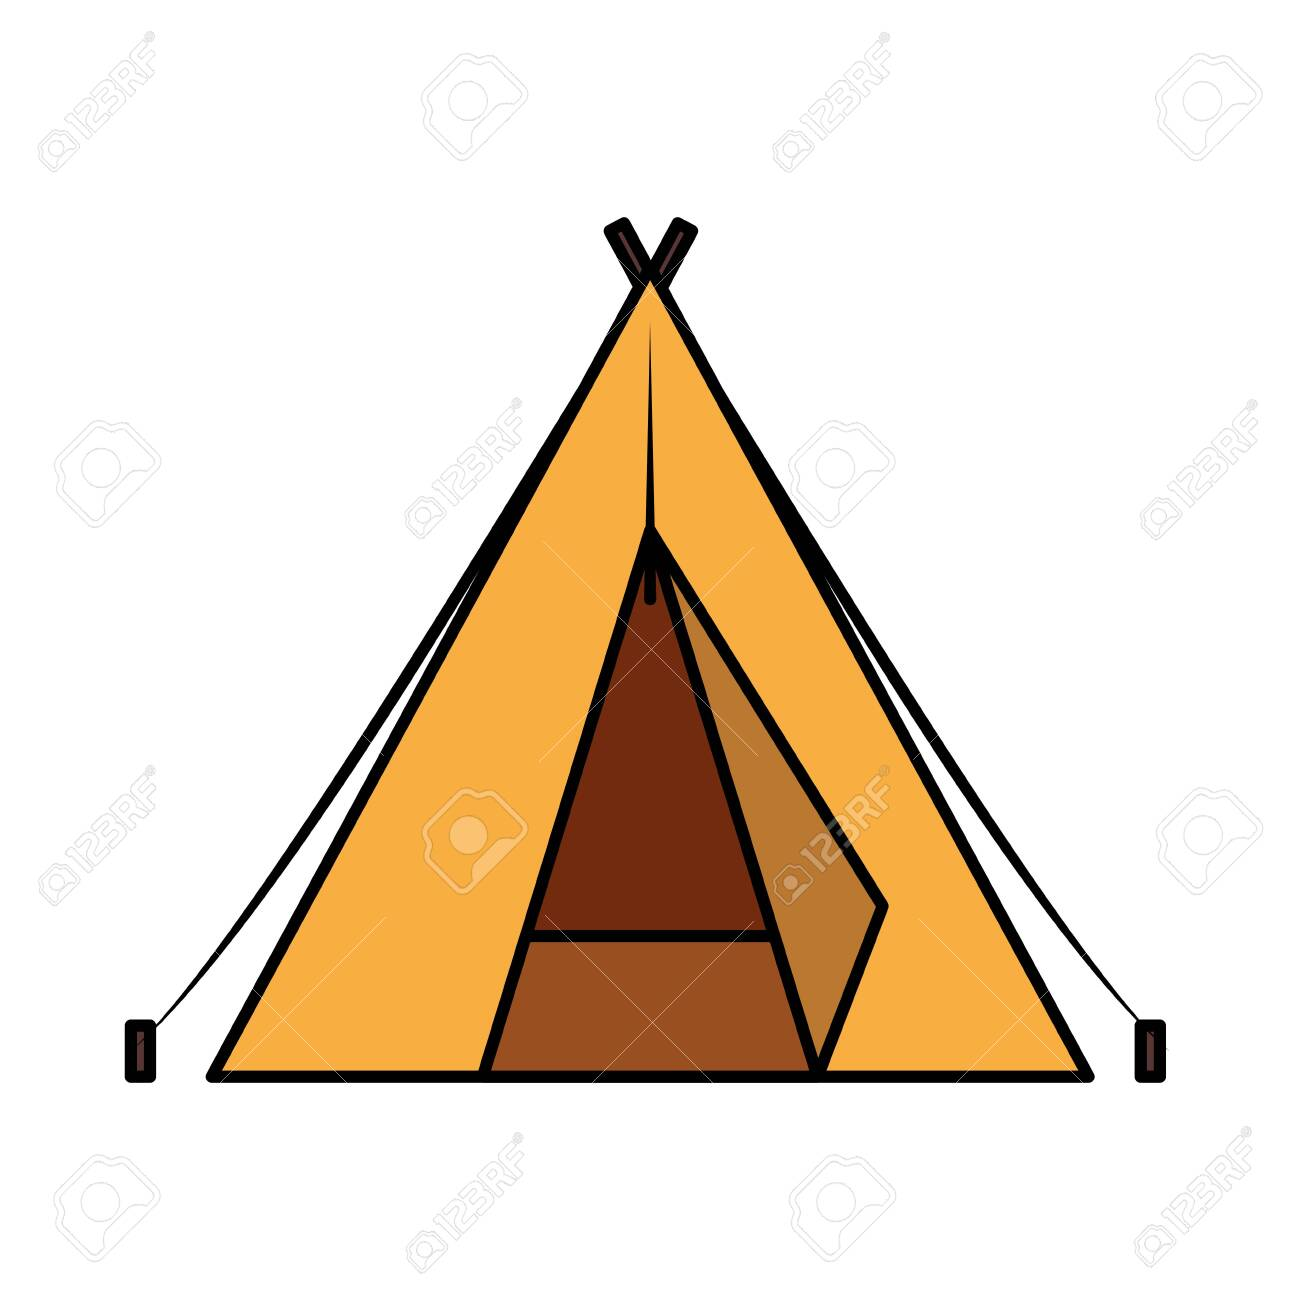 tent camping accessory isolated icon vector illustration design - 137692830